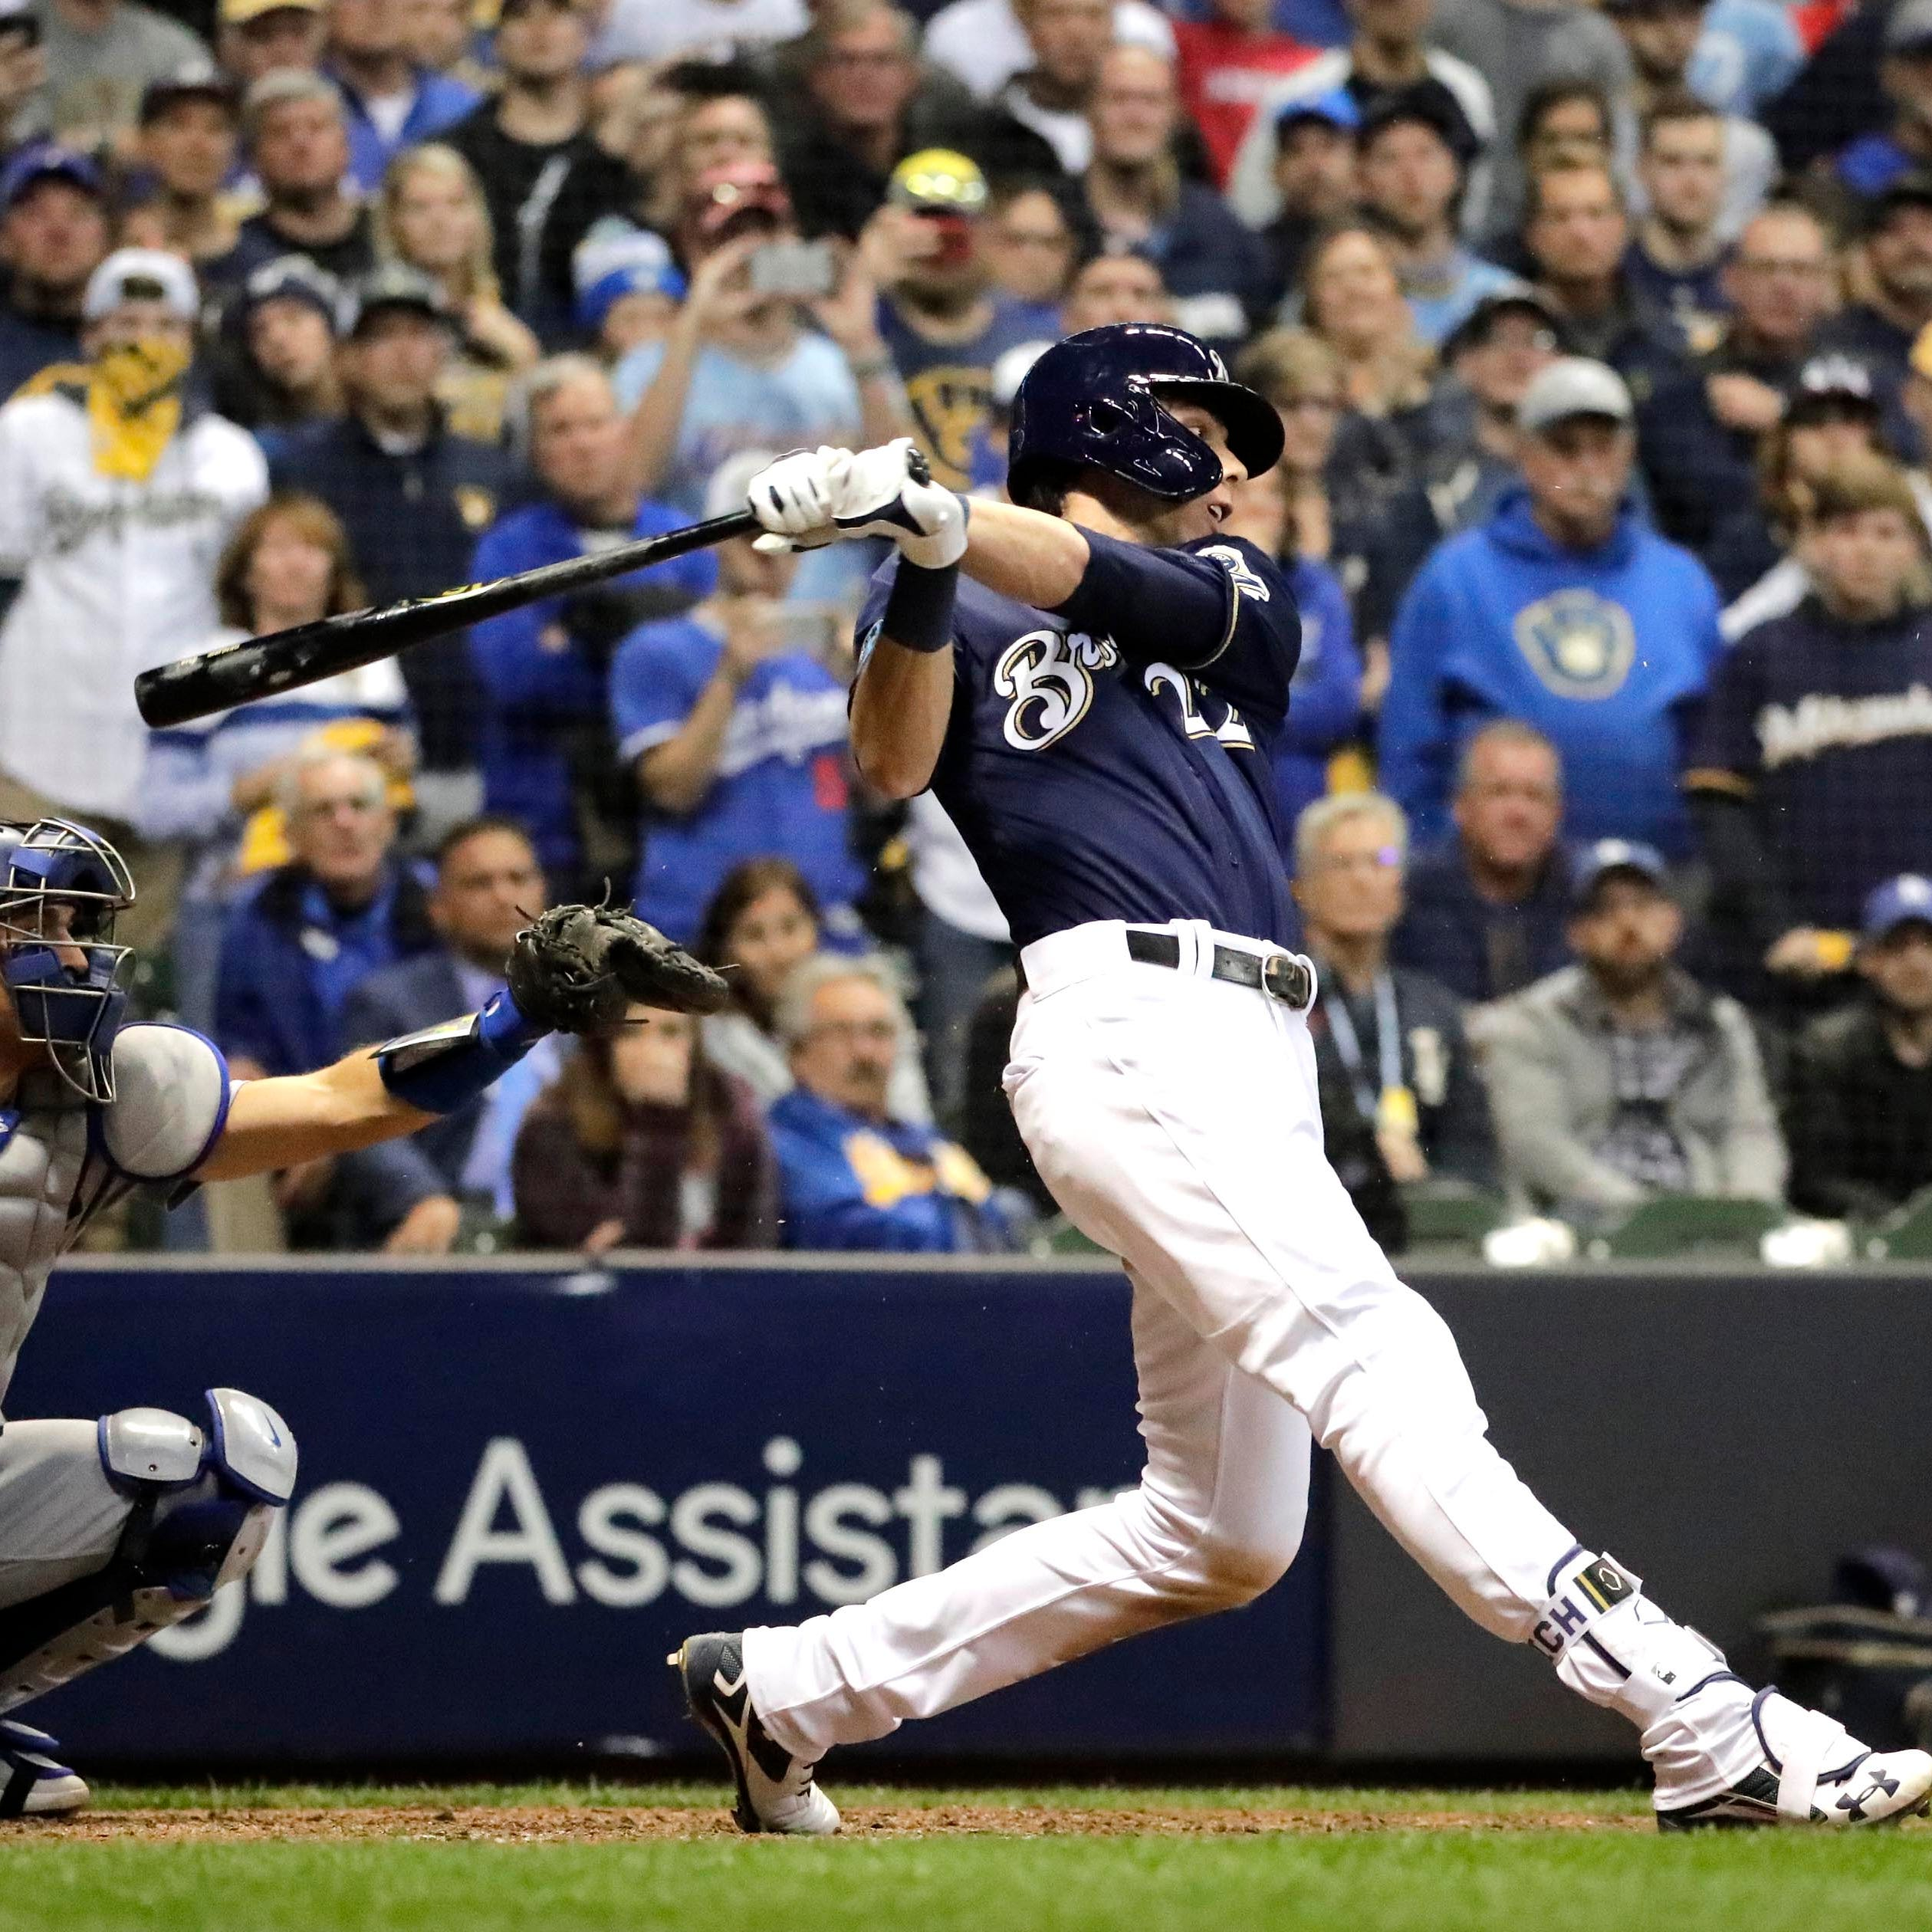 After couple of quiet games at plate in NLCS, Christian Yelich due to break loose for Brewers